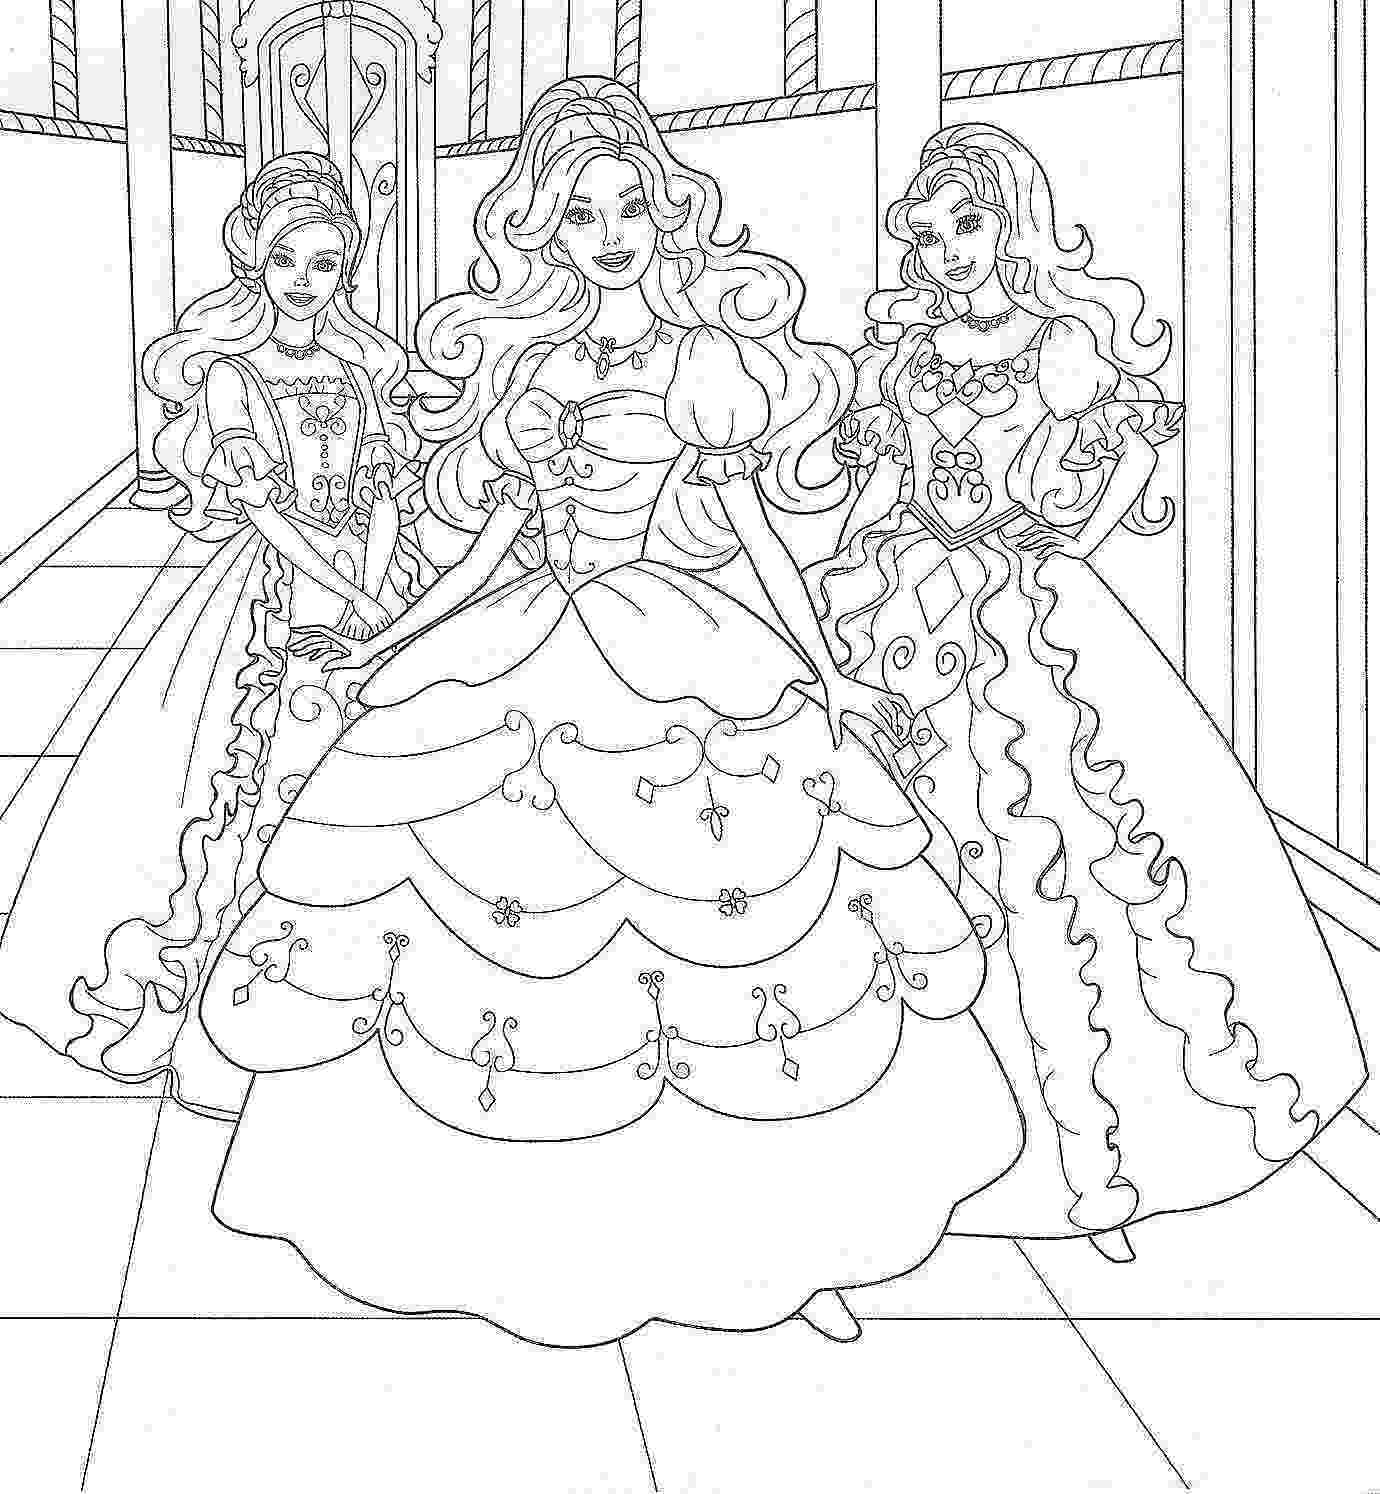 barbie print out coloring pages printable barbie princess coloring pages for kids cool2bkids print pages barbie out coloring